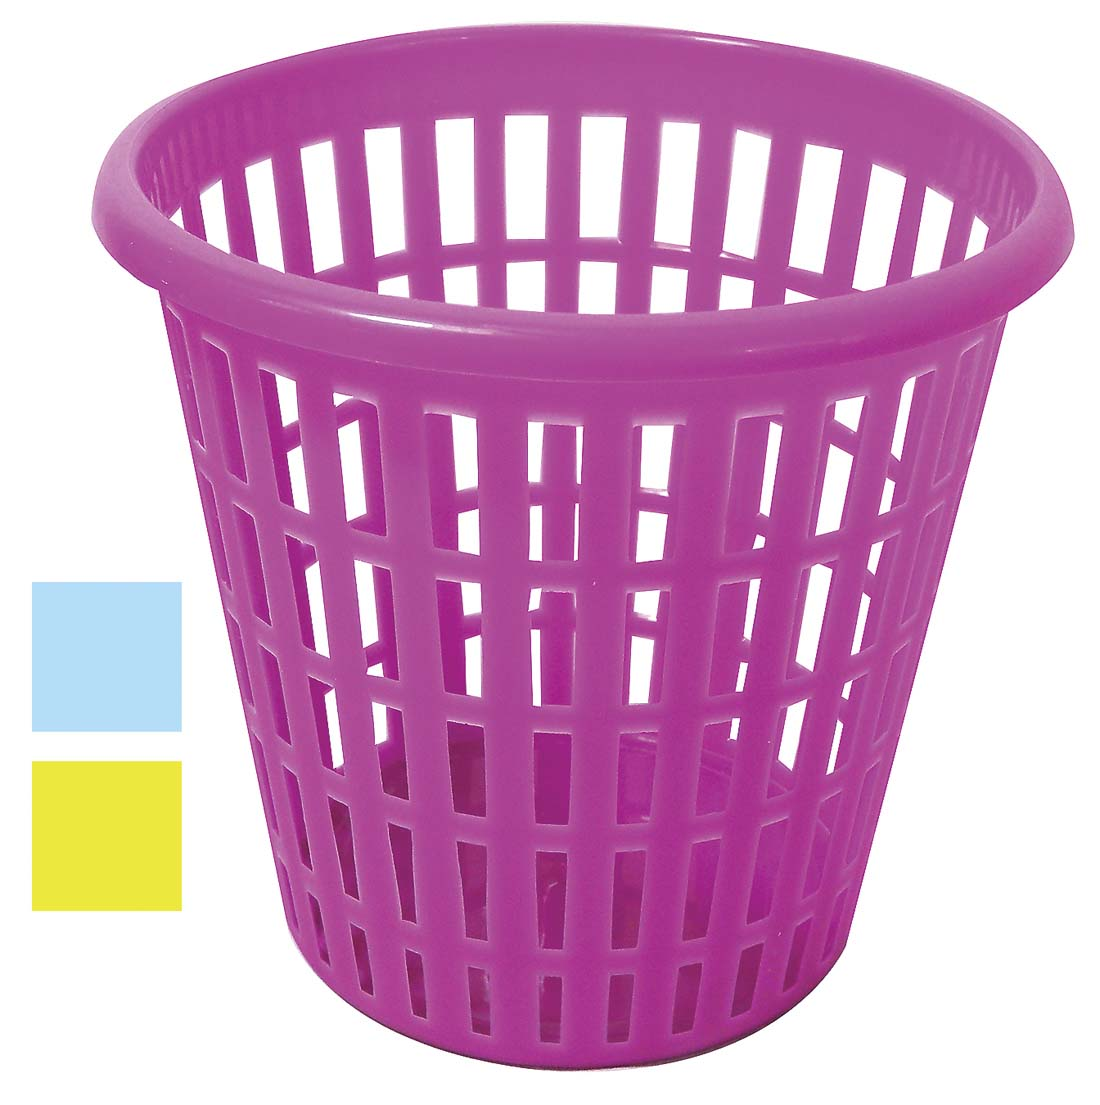 View STORAGE BASKET ROUND 6X6 INCHES ASSORTED COLORS